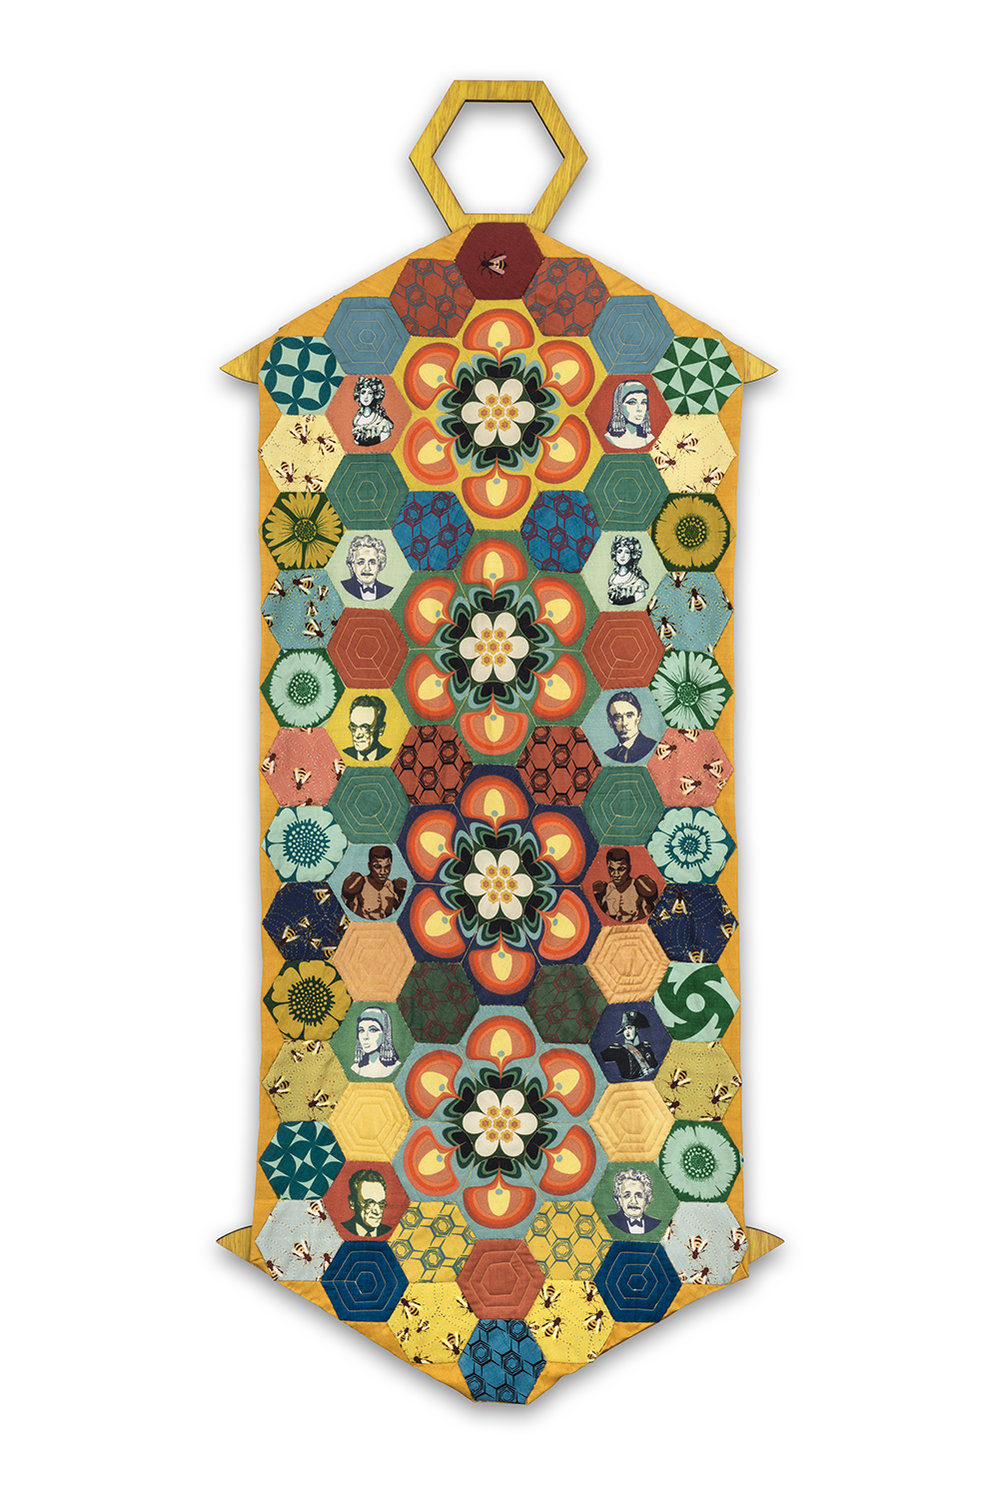 """History Repeating Itself"" quilted wall hanging -handyed silk, screenprinted and digitally printed fabrics - inspired by all things related to bees"